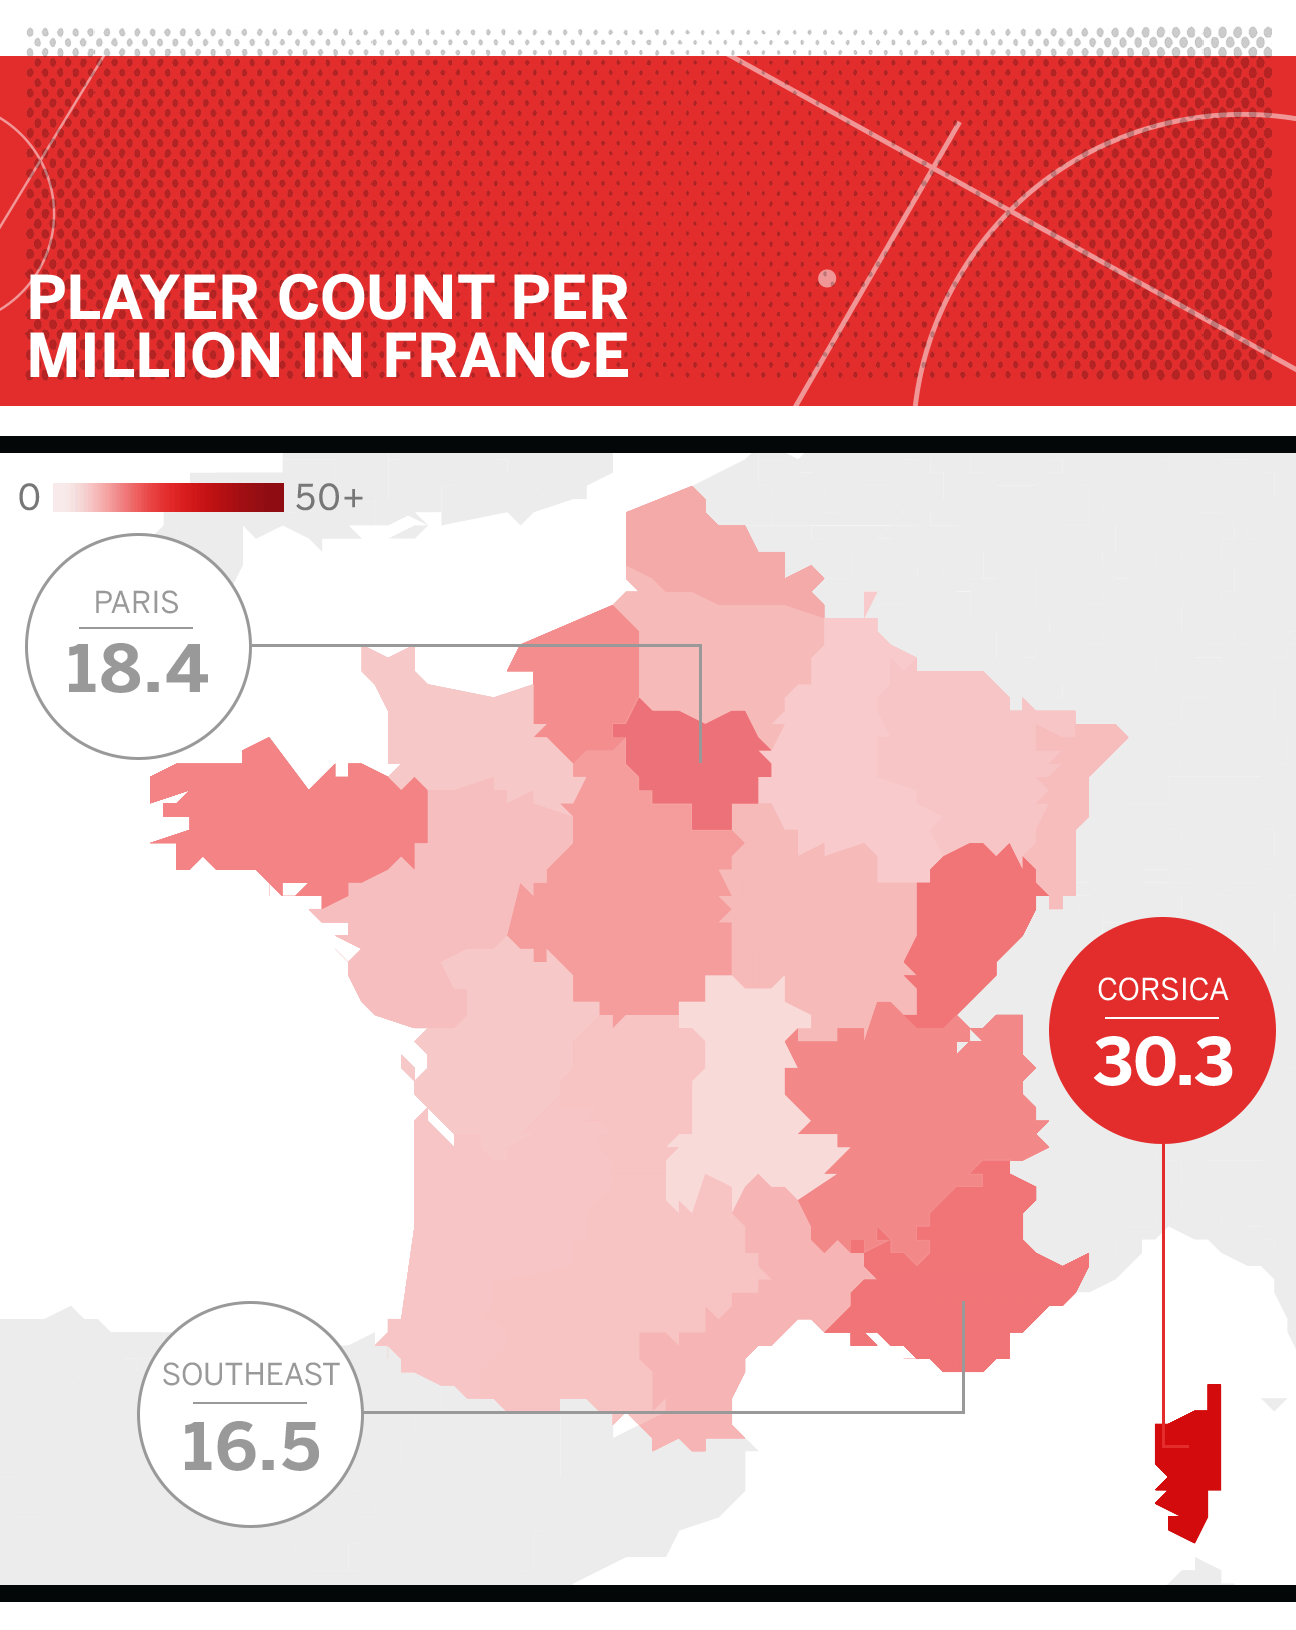 Football hot spots: Where are players produced in the